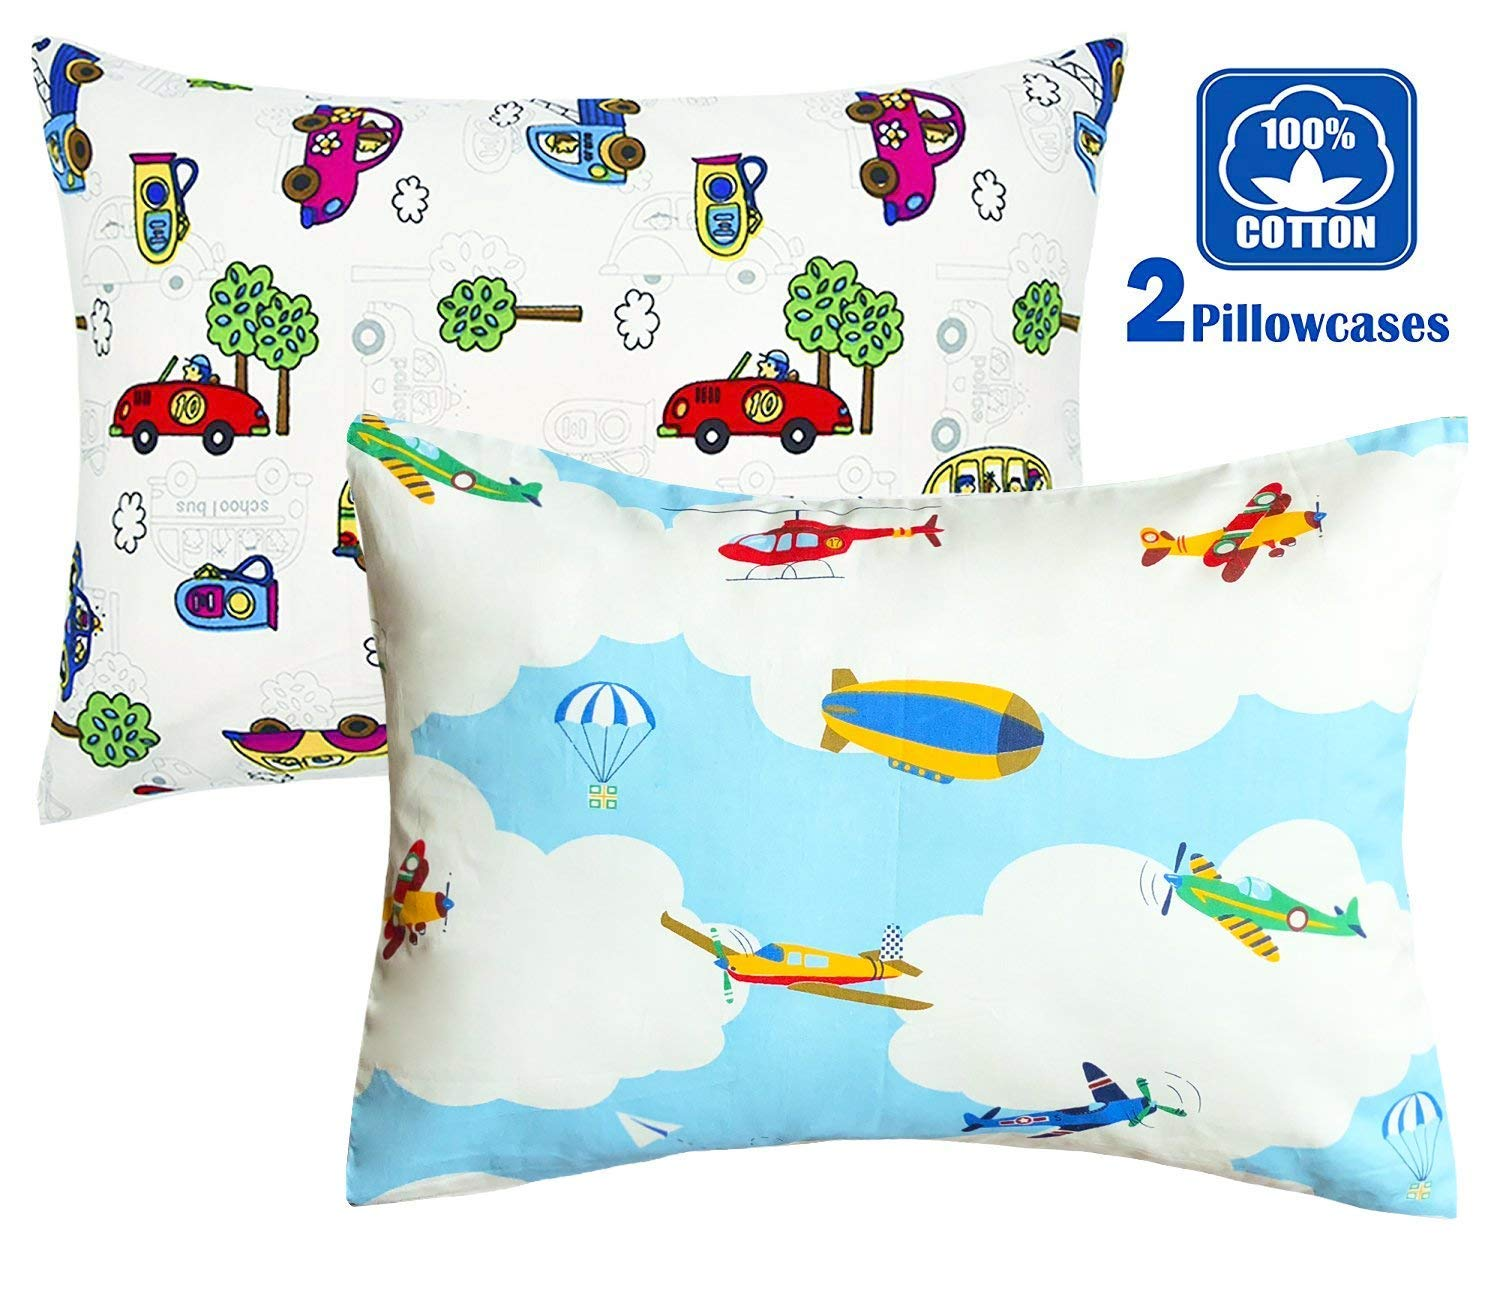 100% Cotton Cartoon Toddler Travel Pillowcase - Cuddle Collection for Boys,For 13x18,12x16 Pillow,Double-Sided Different - Bears and Boats,FREE TRAVEL PACKAGE (2 Bears/Boats) FUMAN